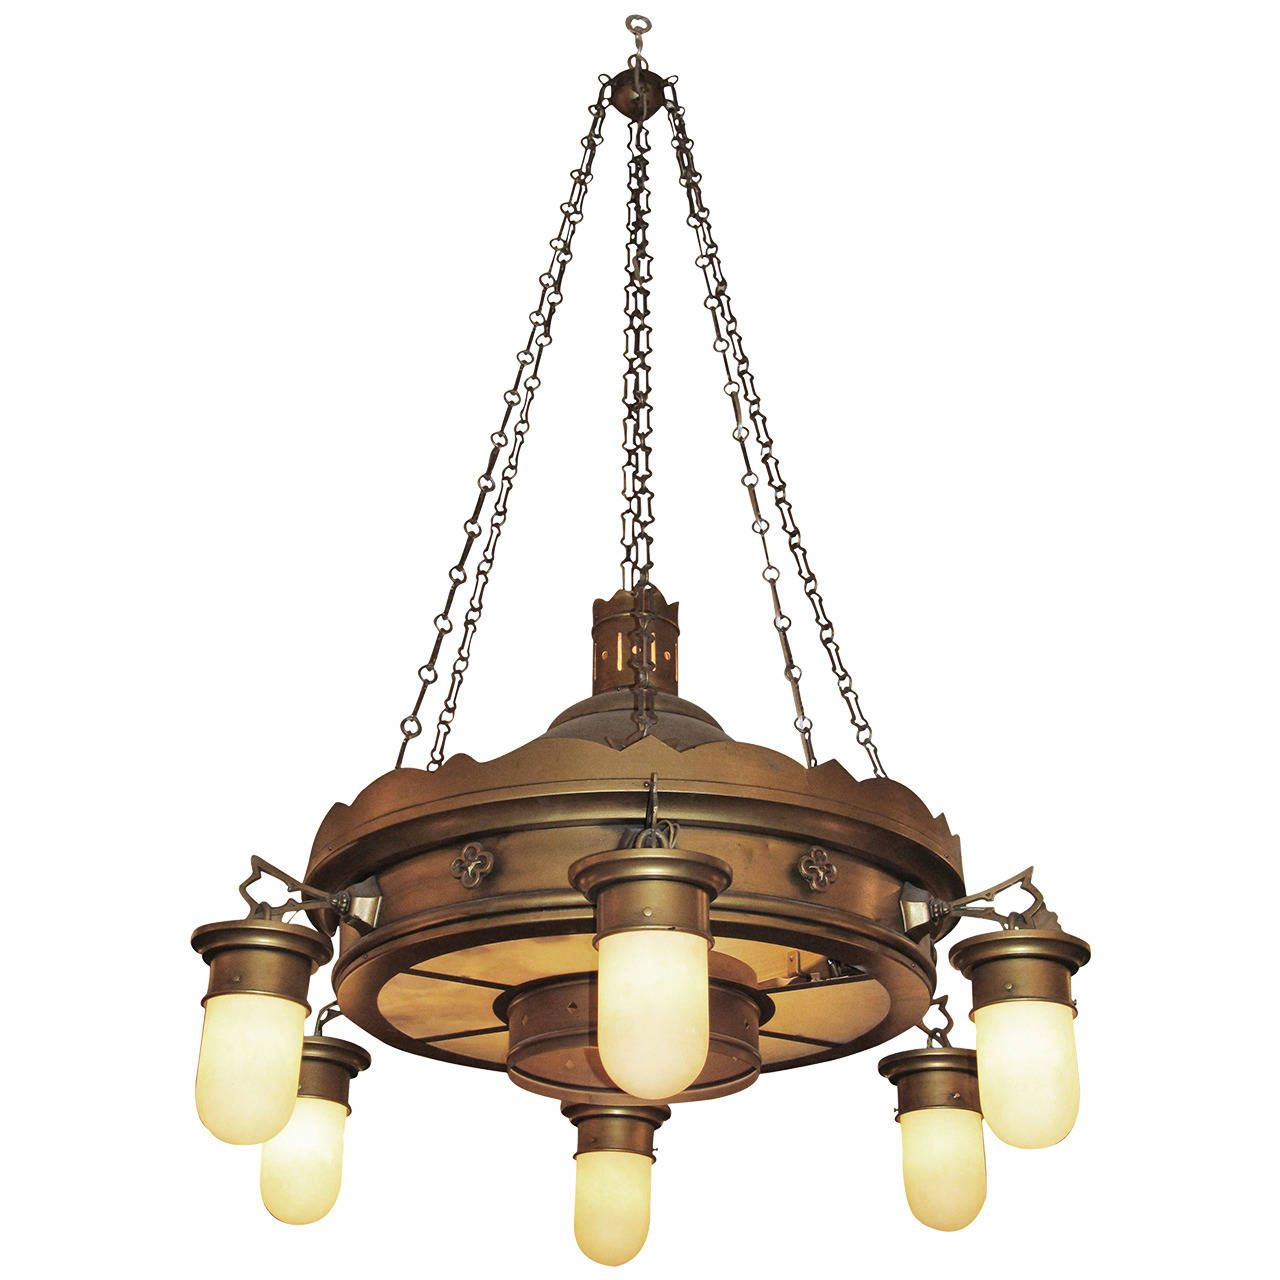 1940s brooklyn church brass and steel downlight chandelier with 1940s brooklyn church brass and steel downlight chandelier with original shades arubaitofo Images